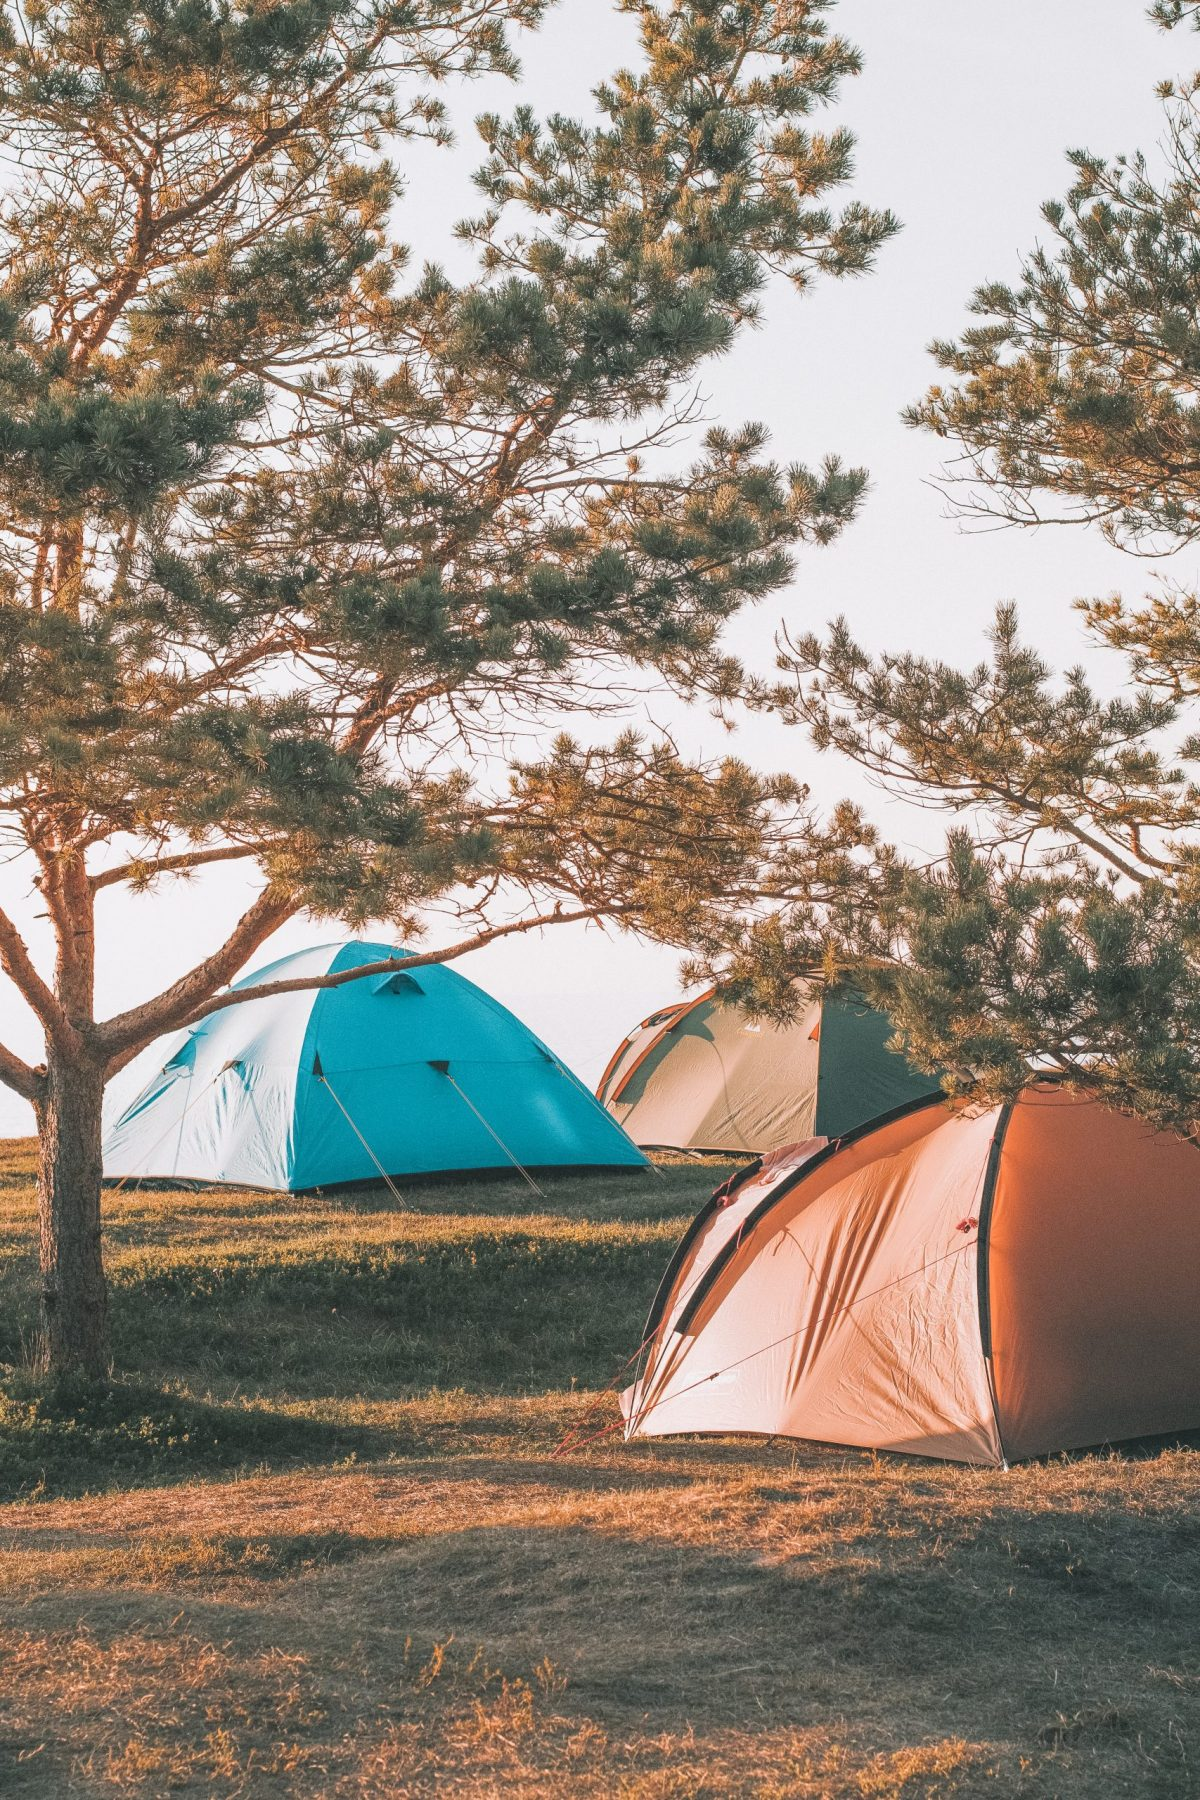 Gift Ideas for Campers - Camping Gear